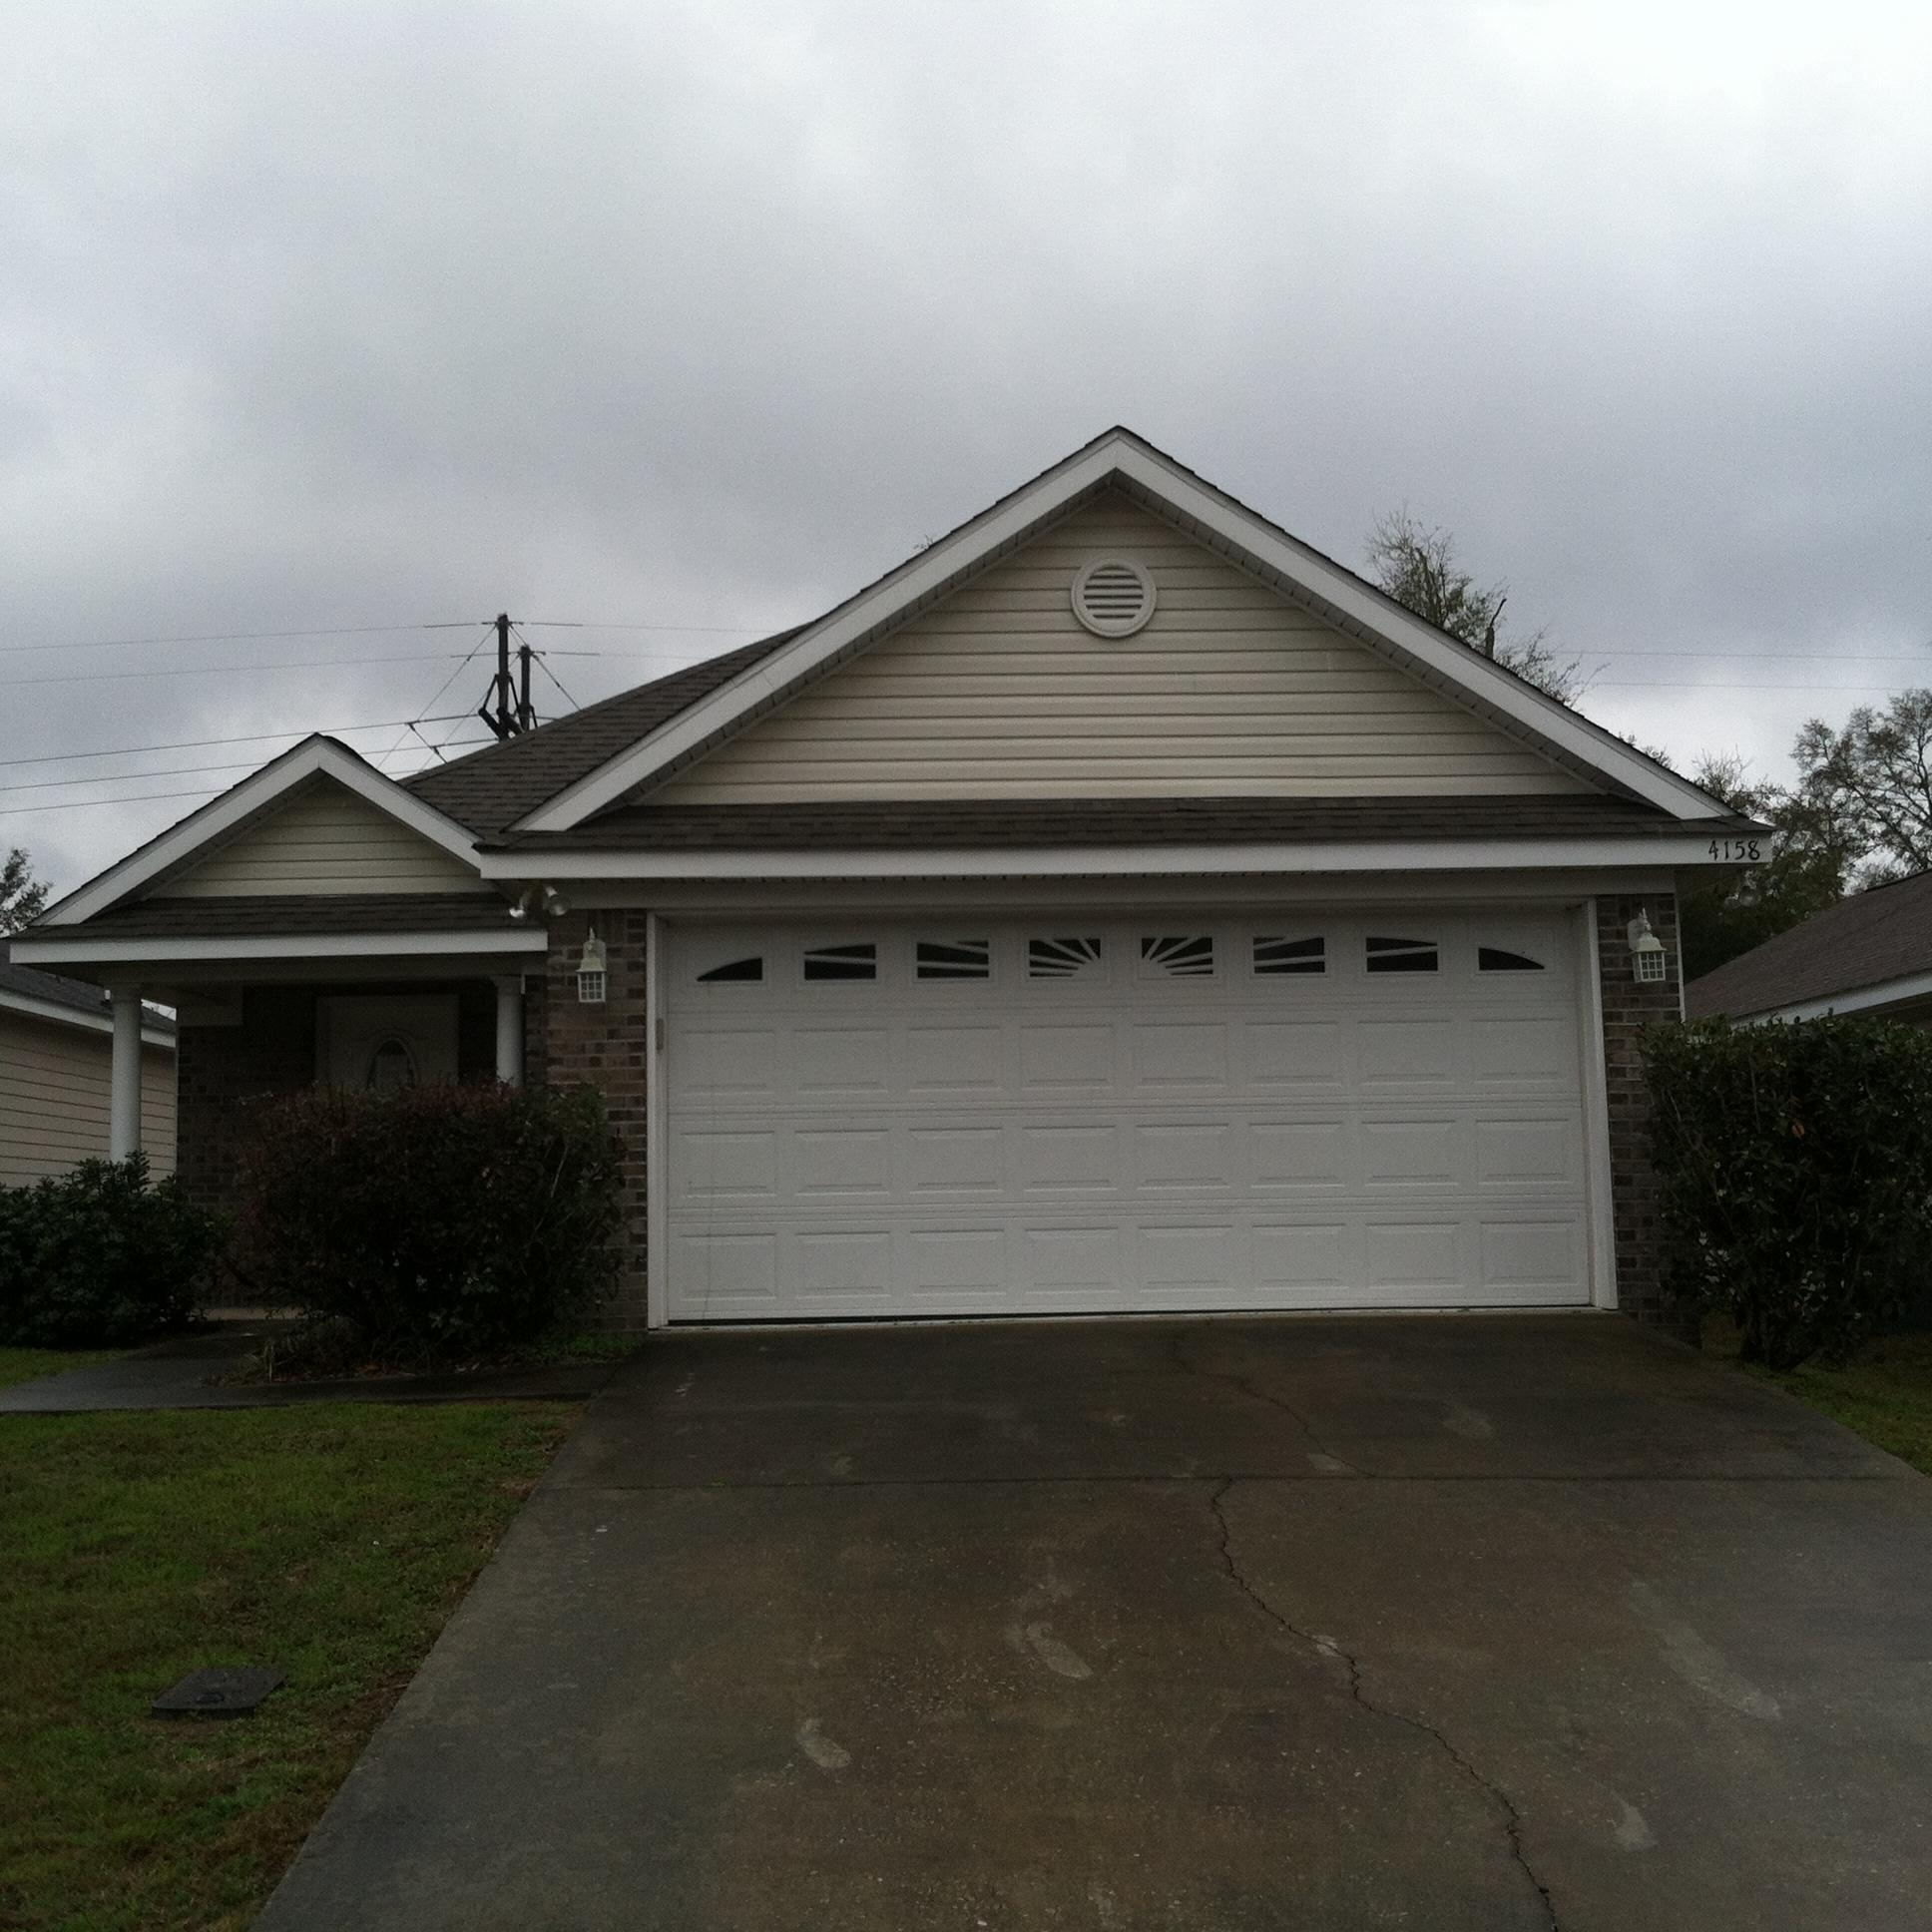 4158 Ridge Haven Rd, Tallahassee, FL 32305